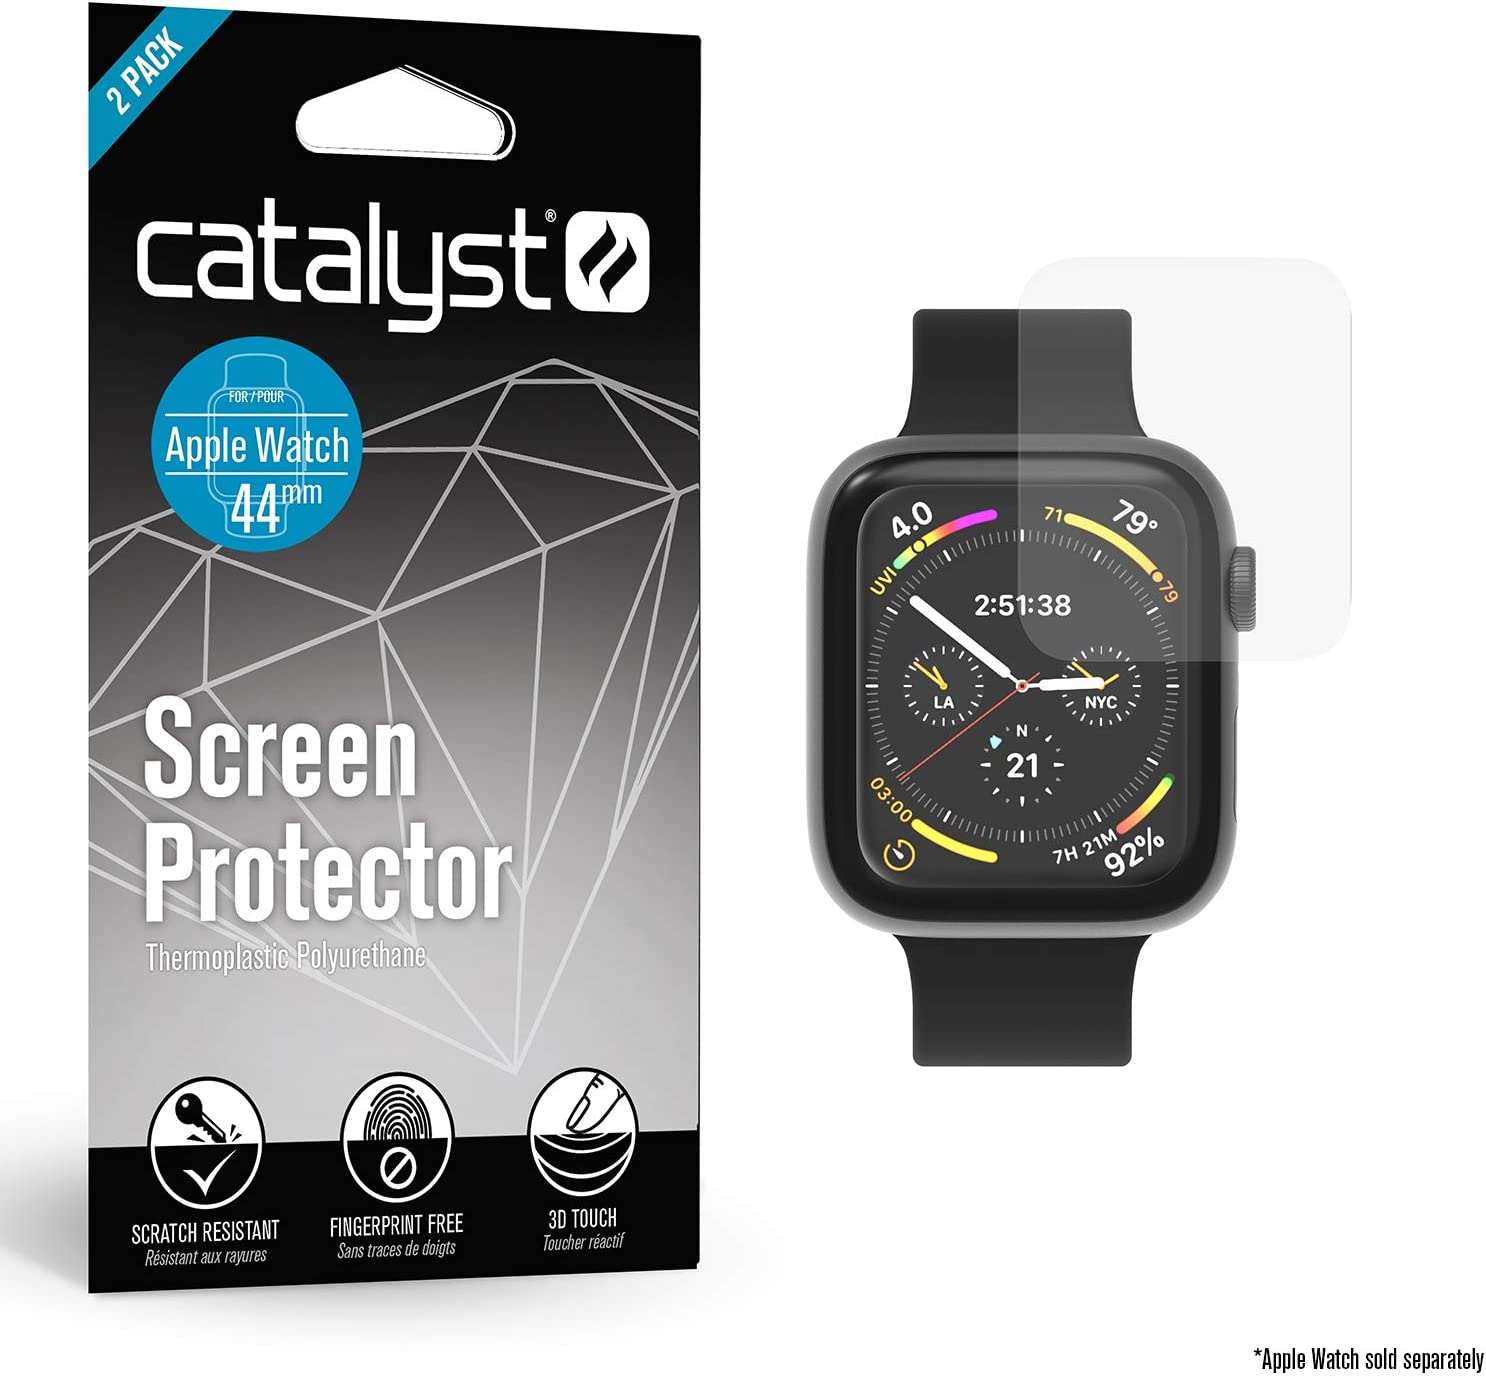 Catalyst 2X Screen Protector for Apple Watch Series 4 44mm Fingerprint Free, Microfiber Cleaning Cloth Included - iWatch Apple Accessories